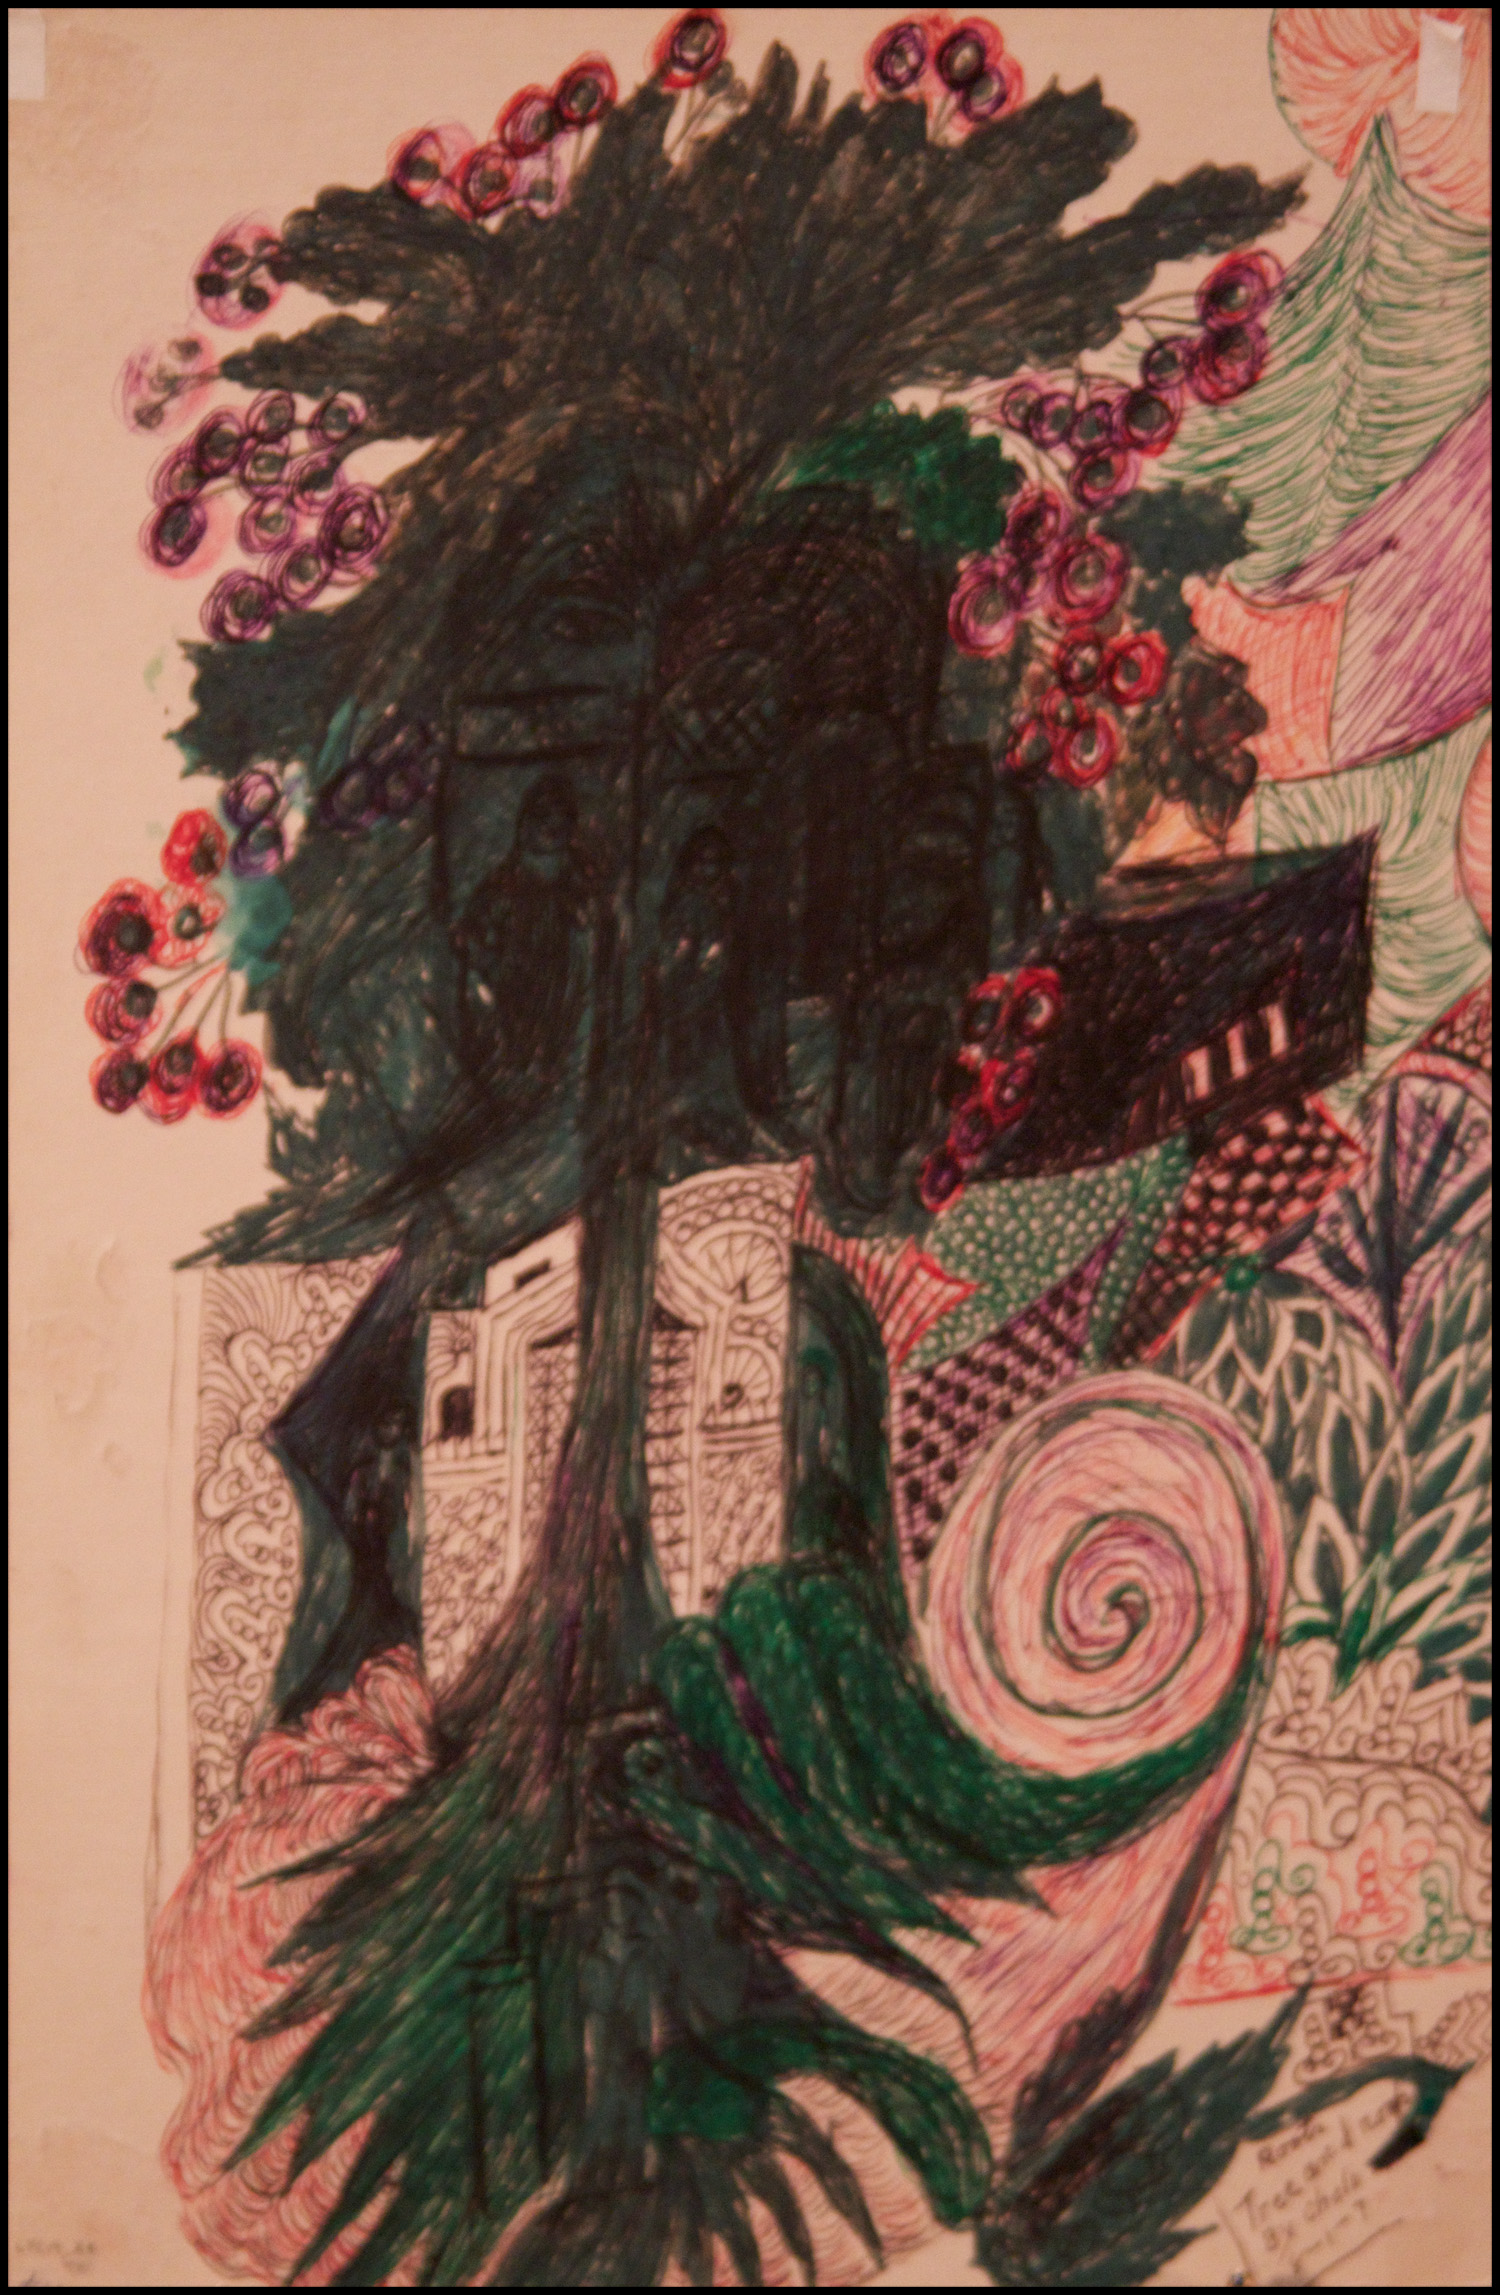 "Consuelo ""Chelo"" Gonzalez Amezcua (American, 1903-1975).  Tree and Roots , August 1, 1974---Verso: August 2, 1974. Ink on paper, 12 x 8 in. Intuit: The Center for Intuitive and Outsider Art, gift of Cleo F. Wilson, 2014.2a"